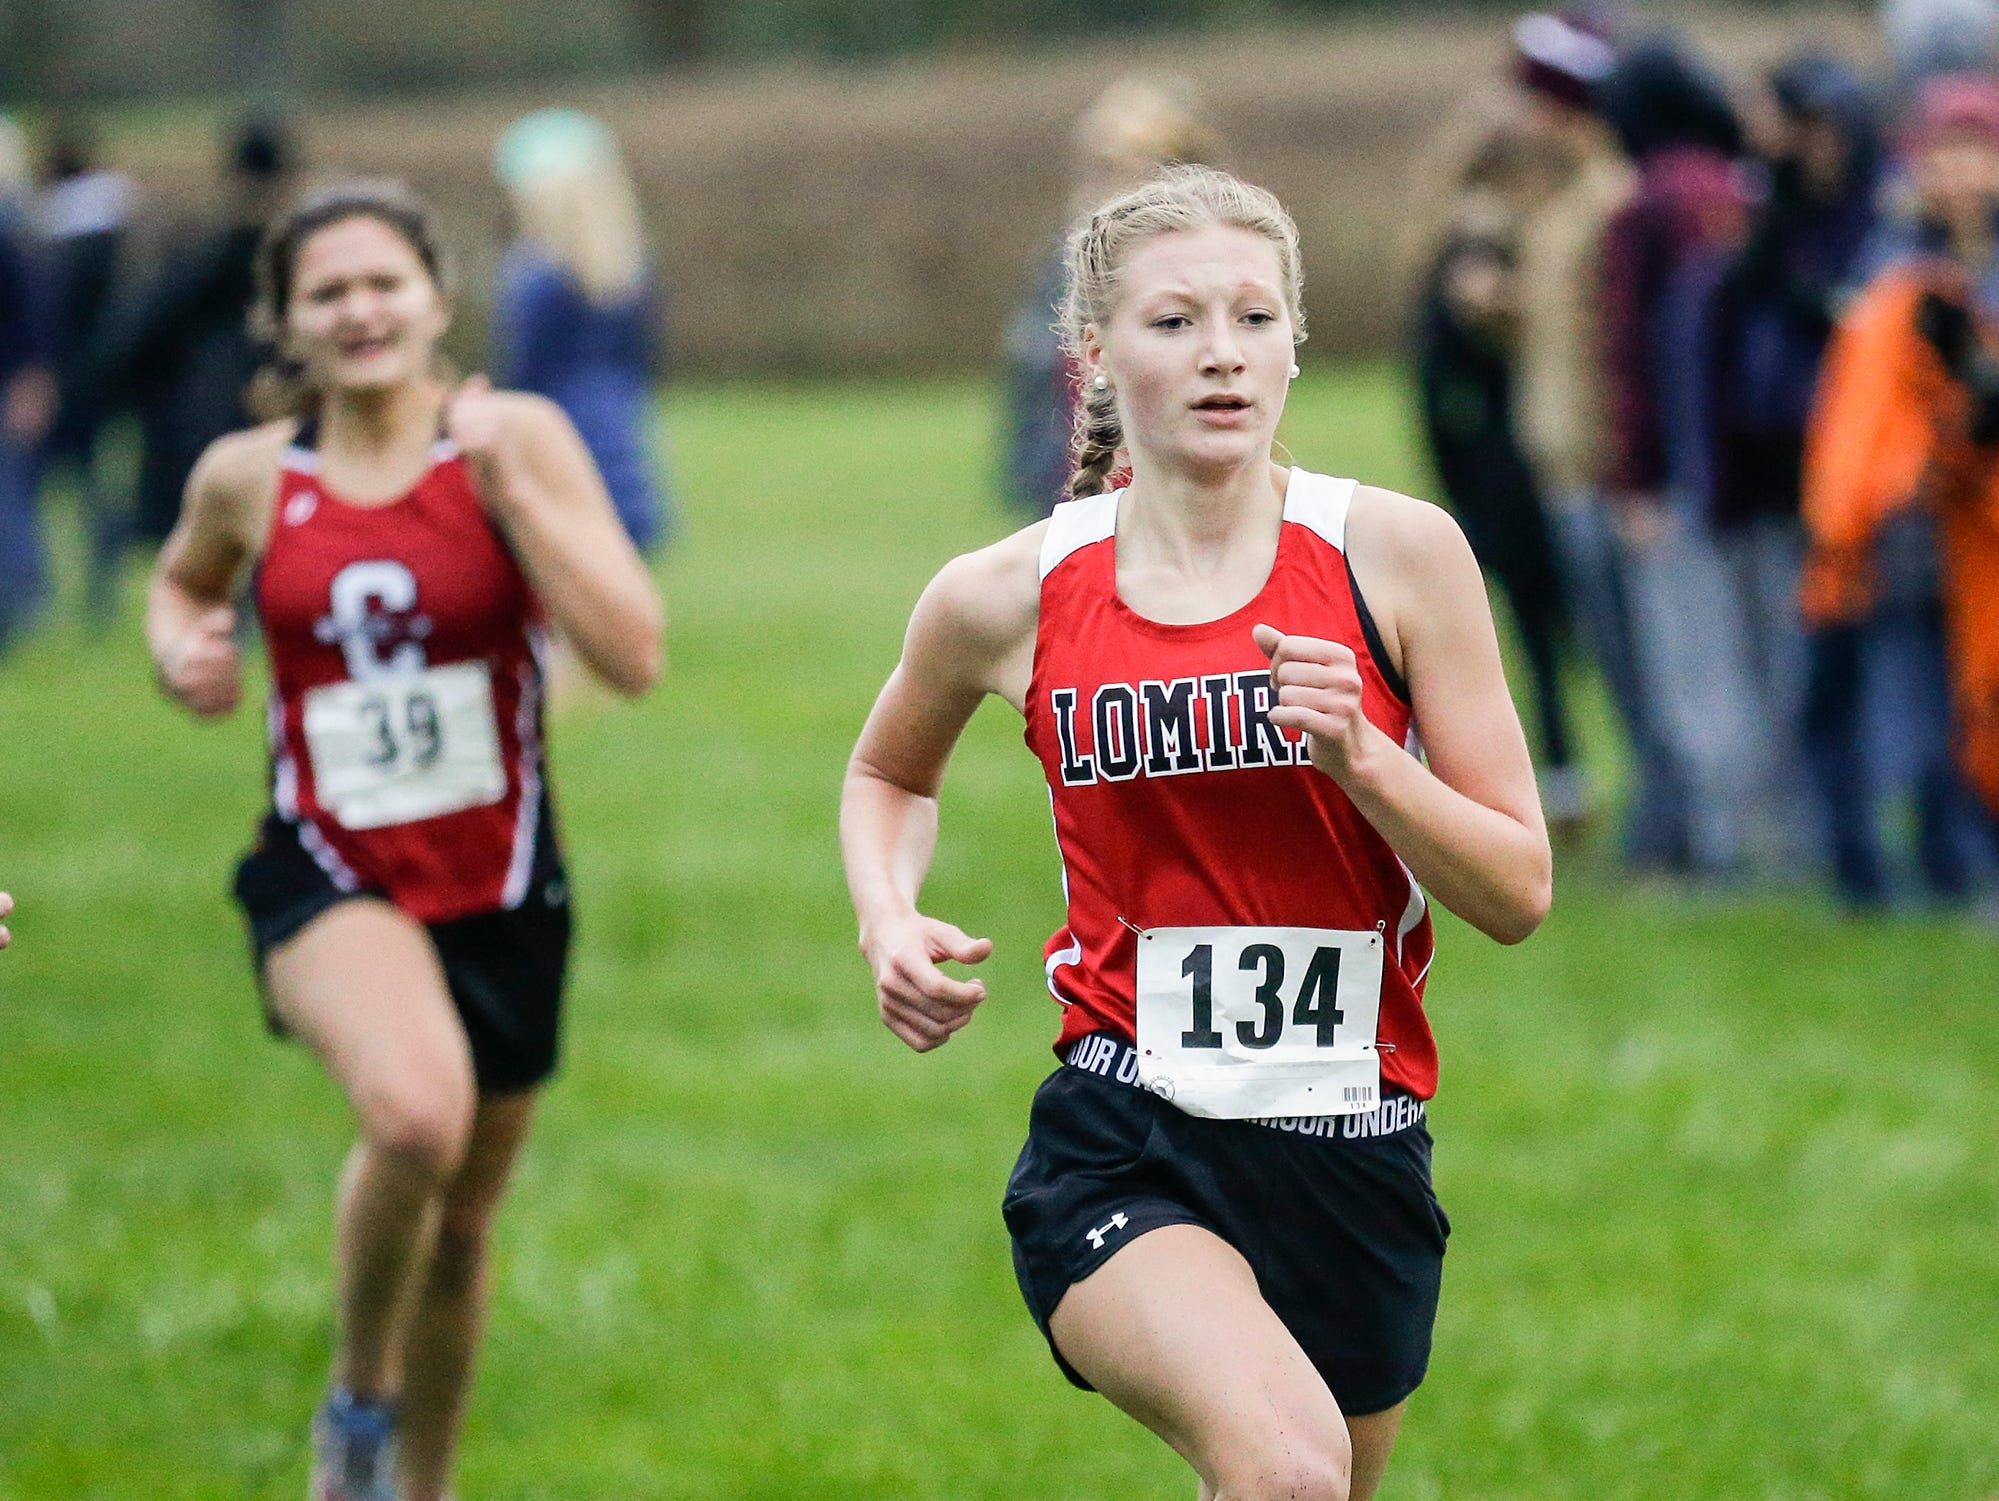 Lomira High School's Madelyn King runs in the WIAA Division two Mayville sectional cross country meet at the Mayville golf course Friday, October 19, 2018. Doug Raflik/USA TODAY NETWORK-Wisconsin